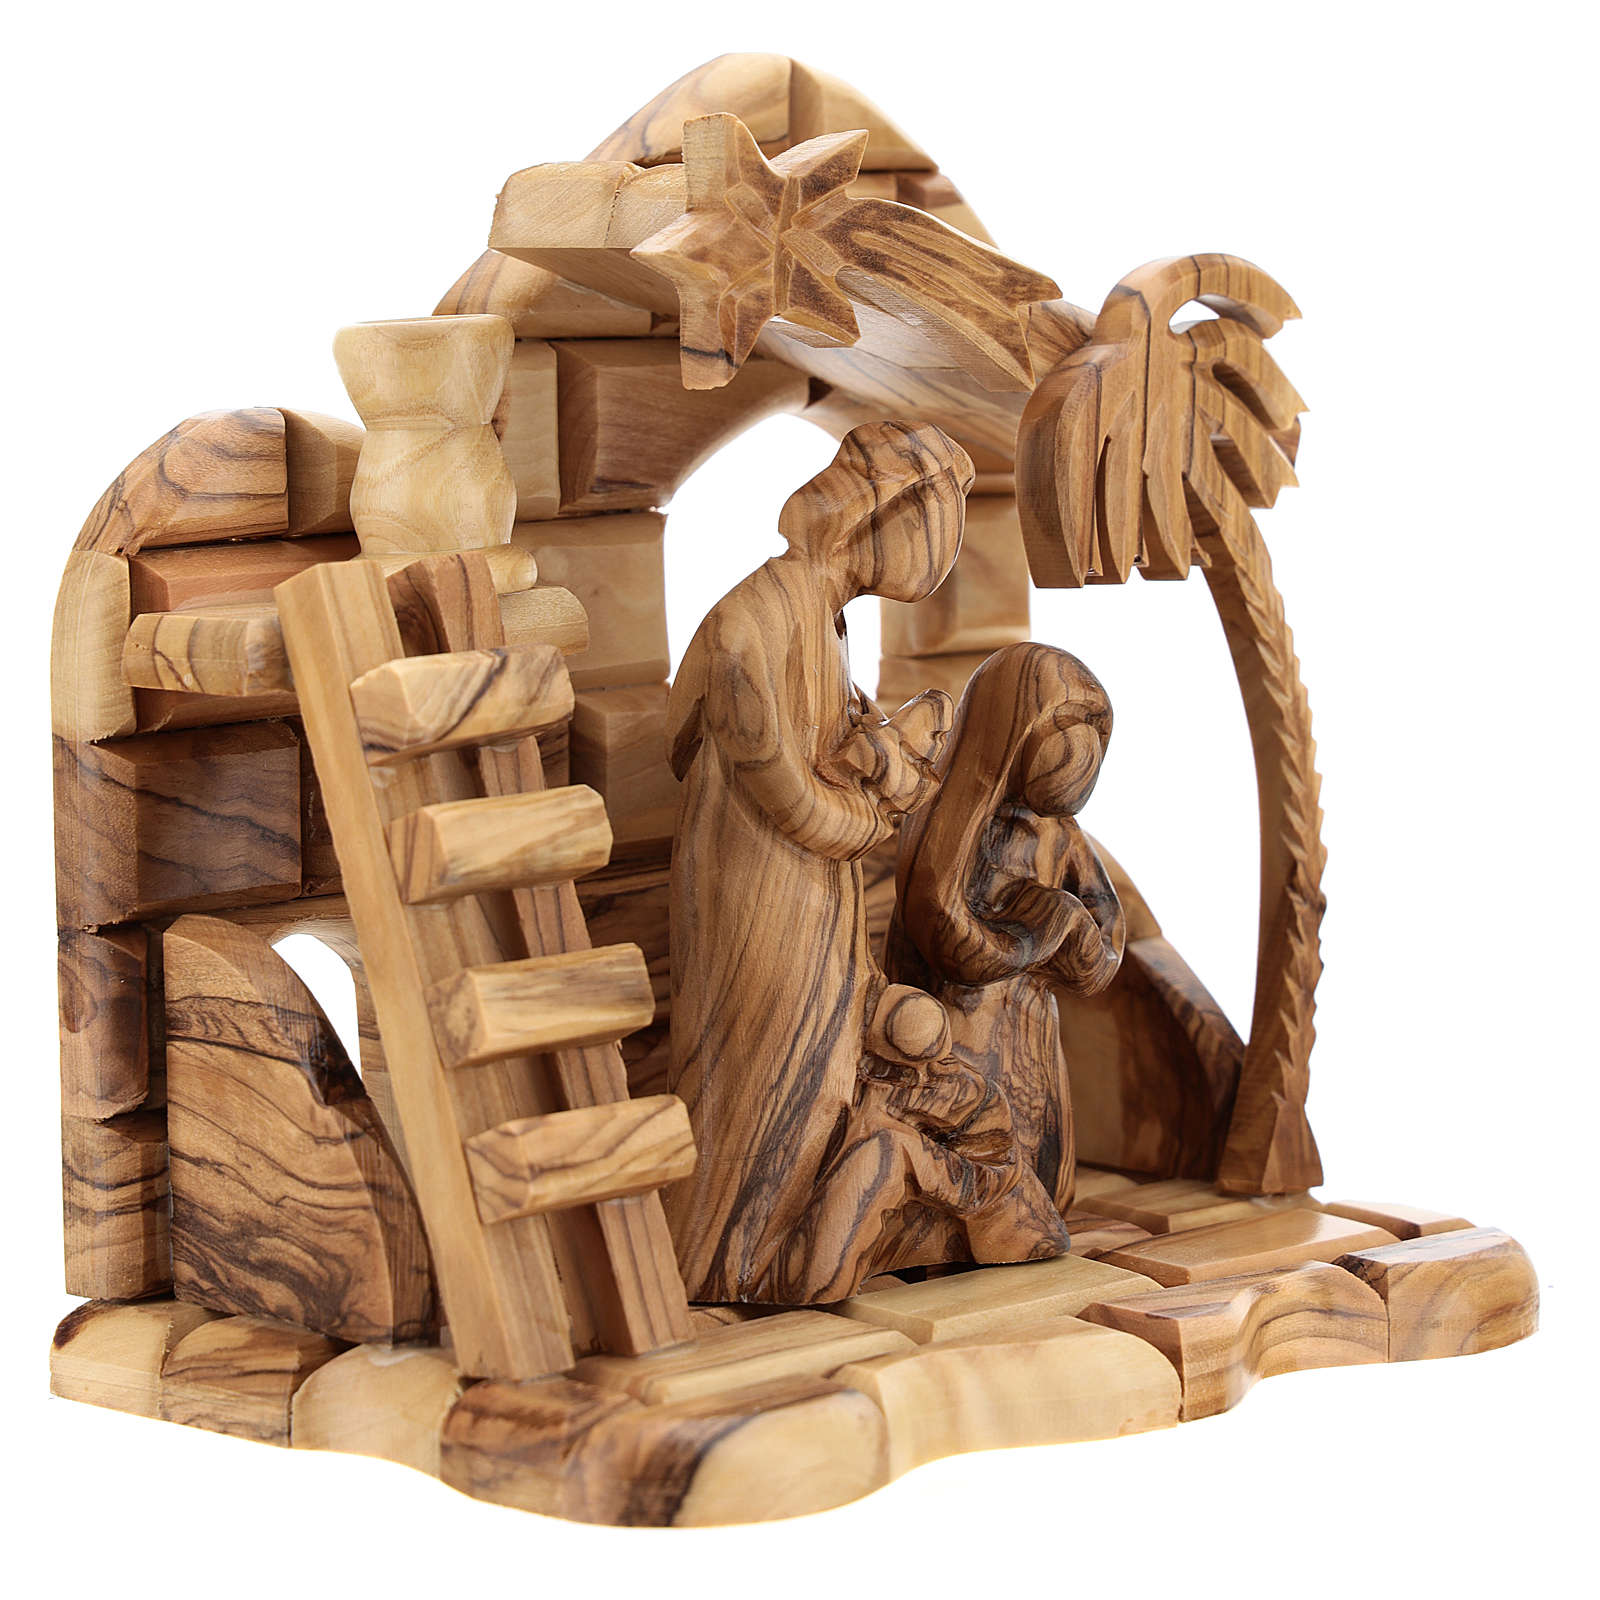 Bethlehem house in olive wood with complete stylized Nativity scene of 15x15x10 cm 4